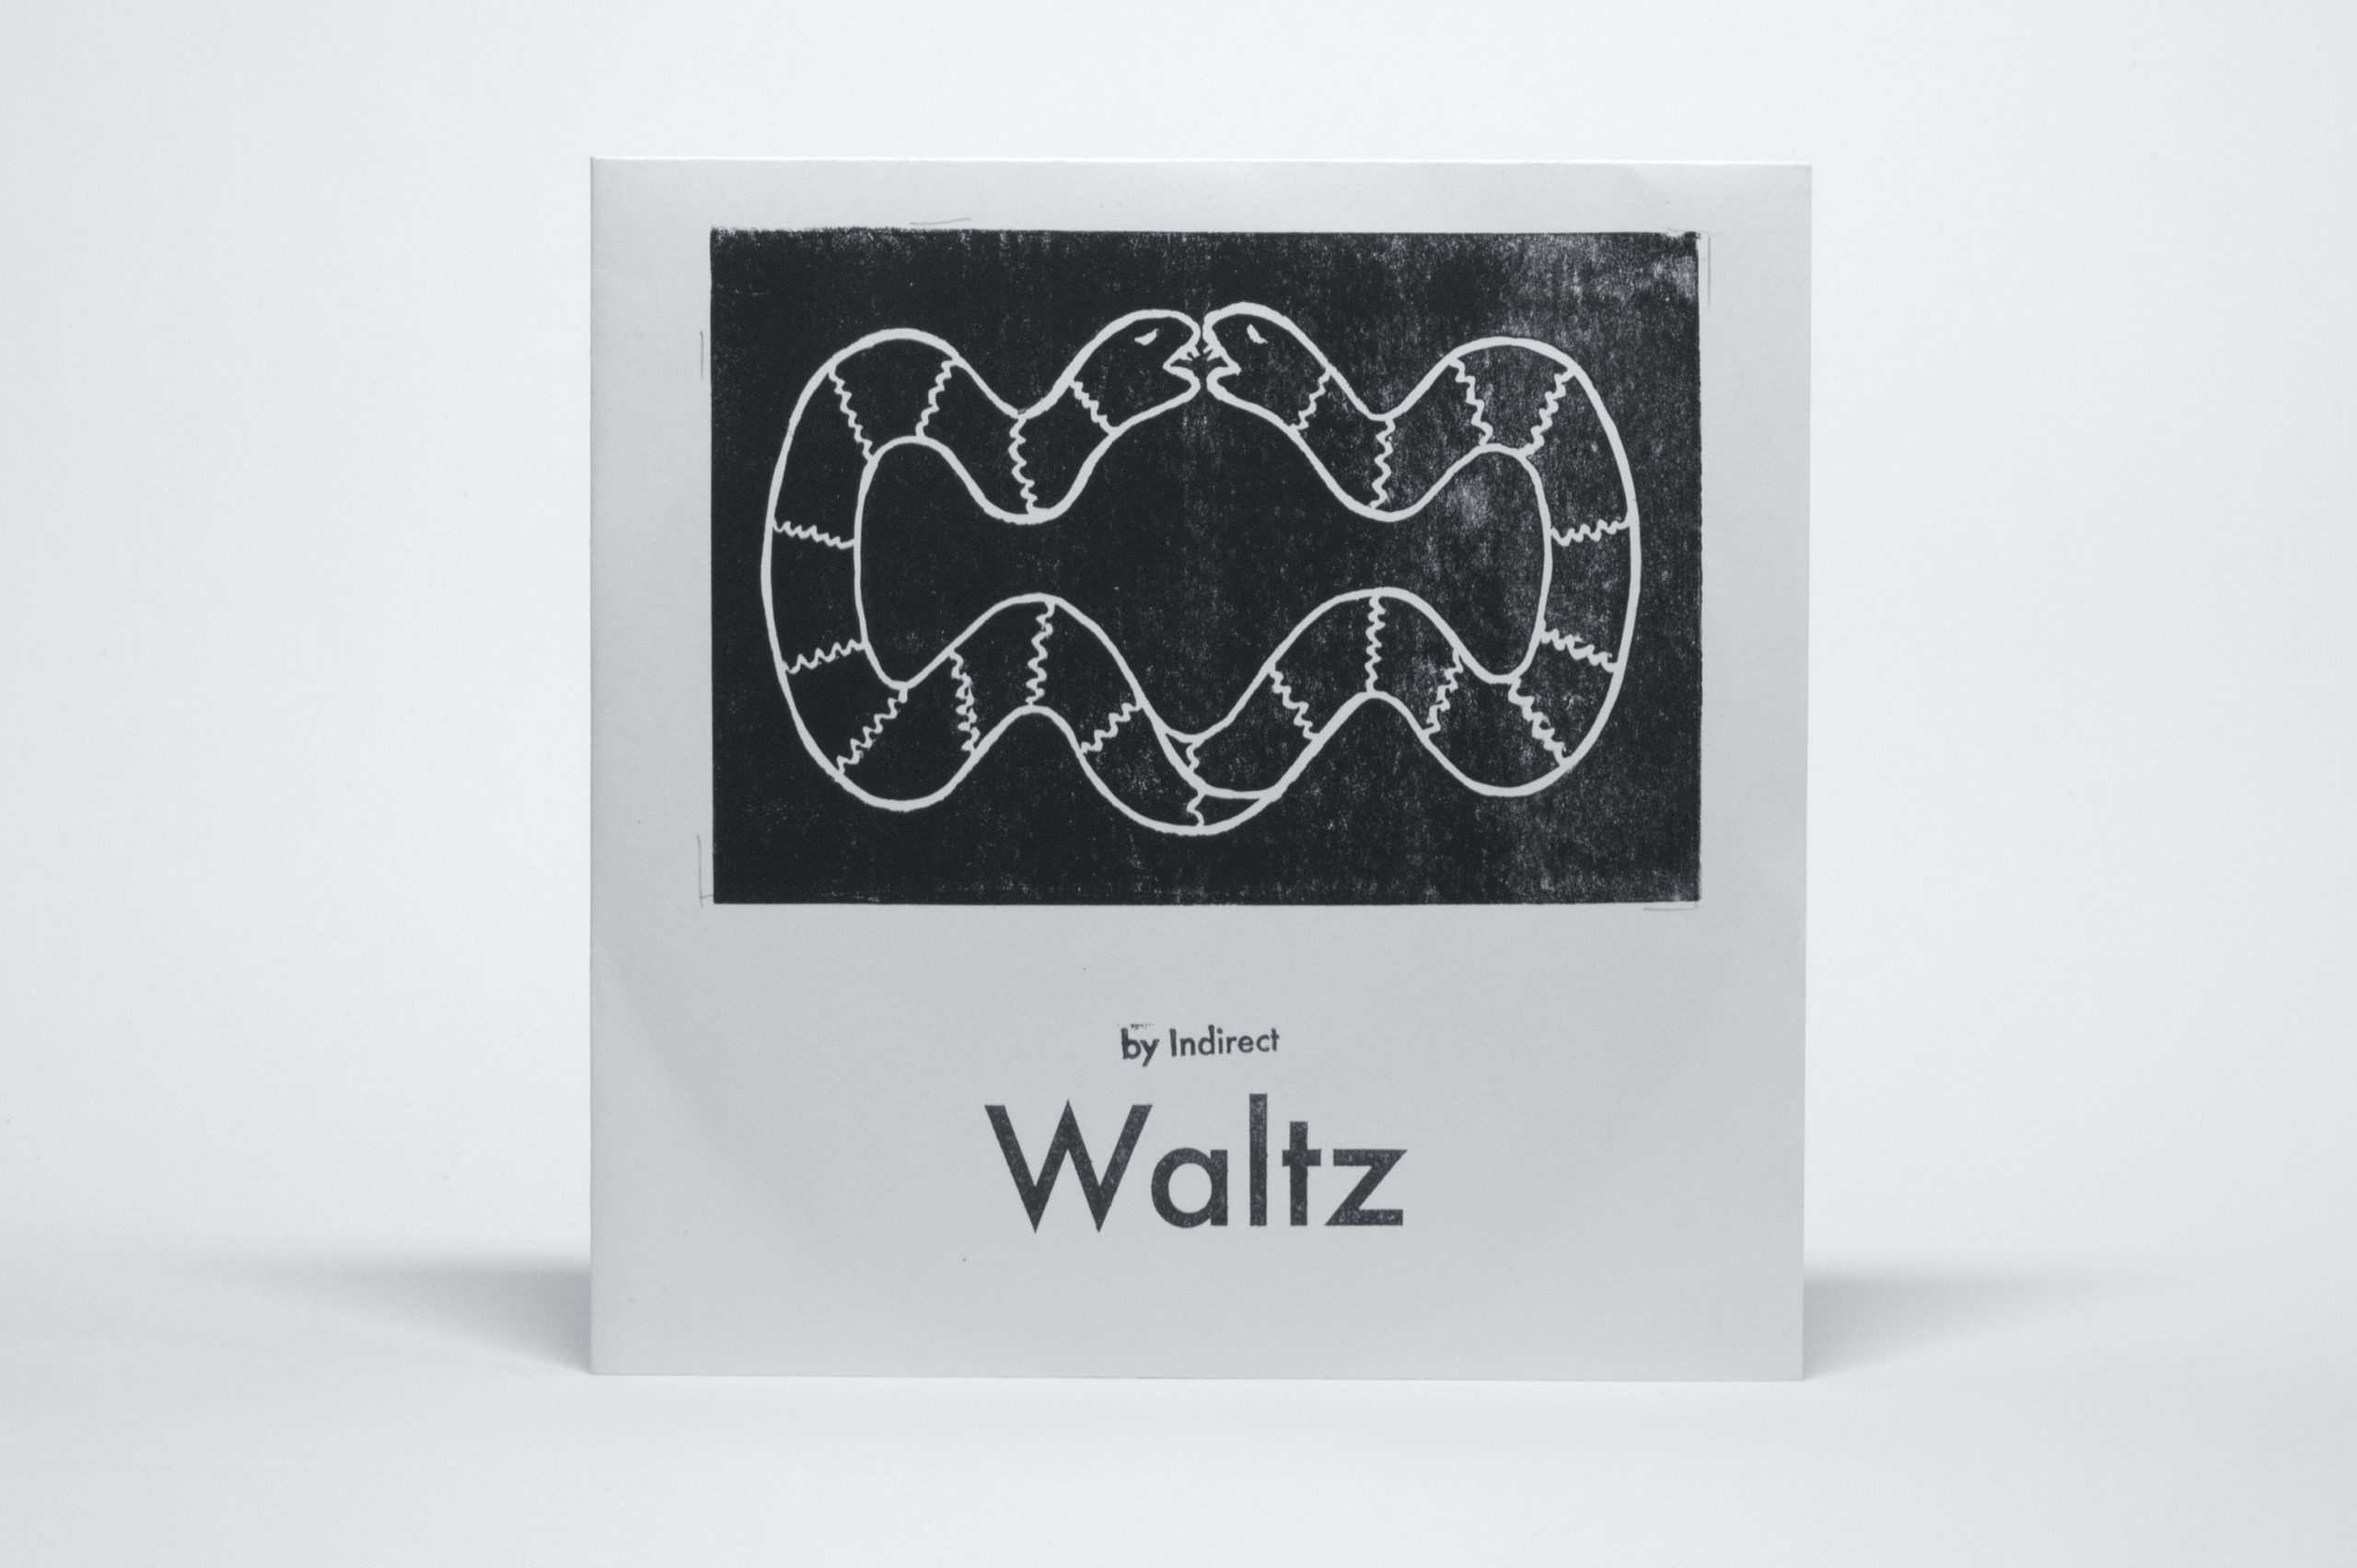 Indirect - Waltz